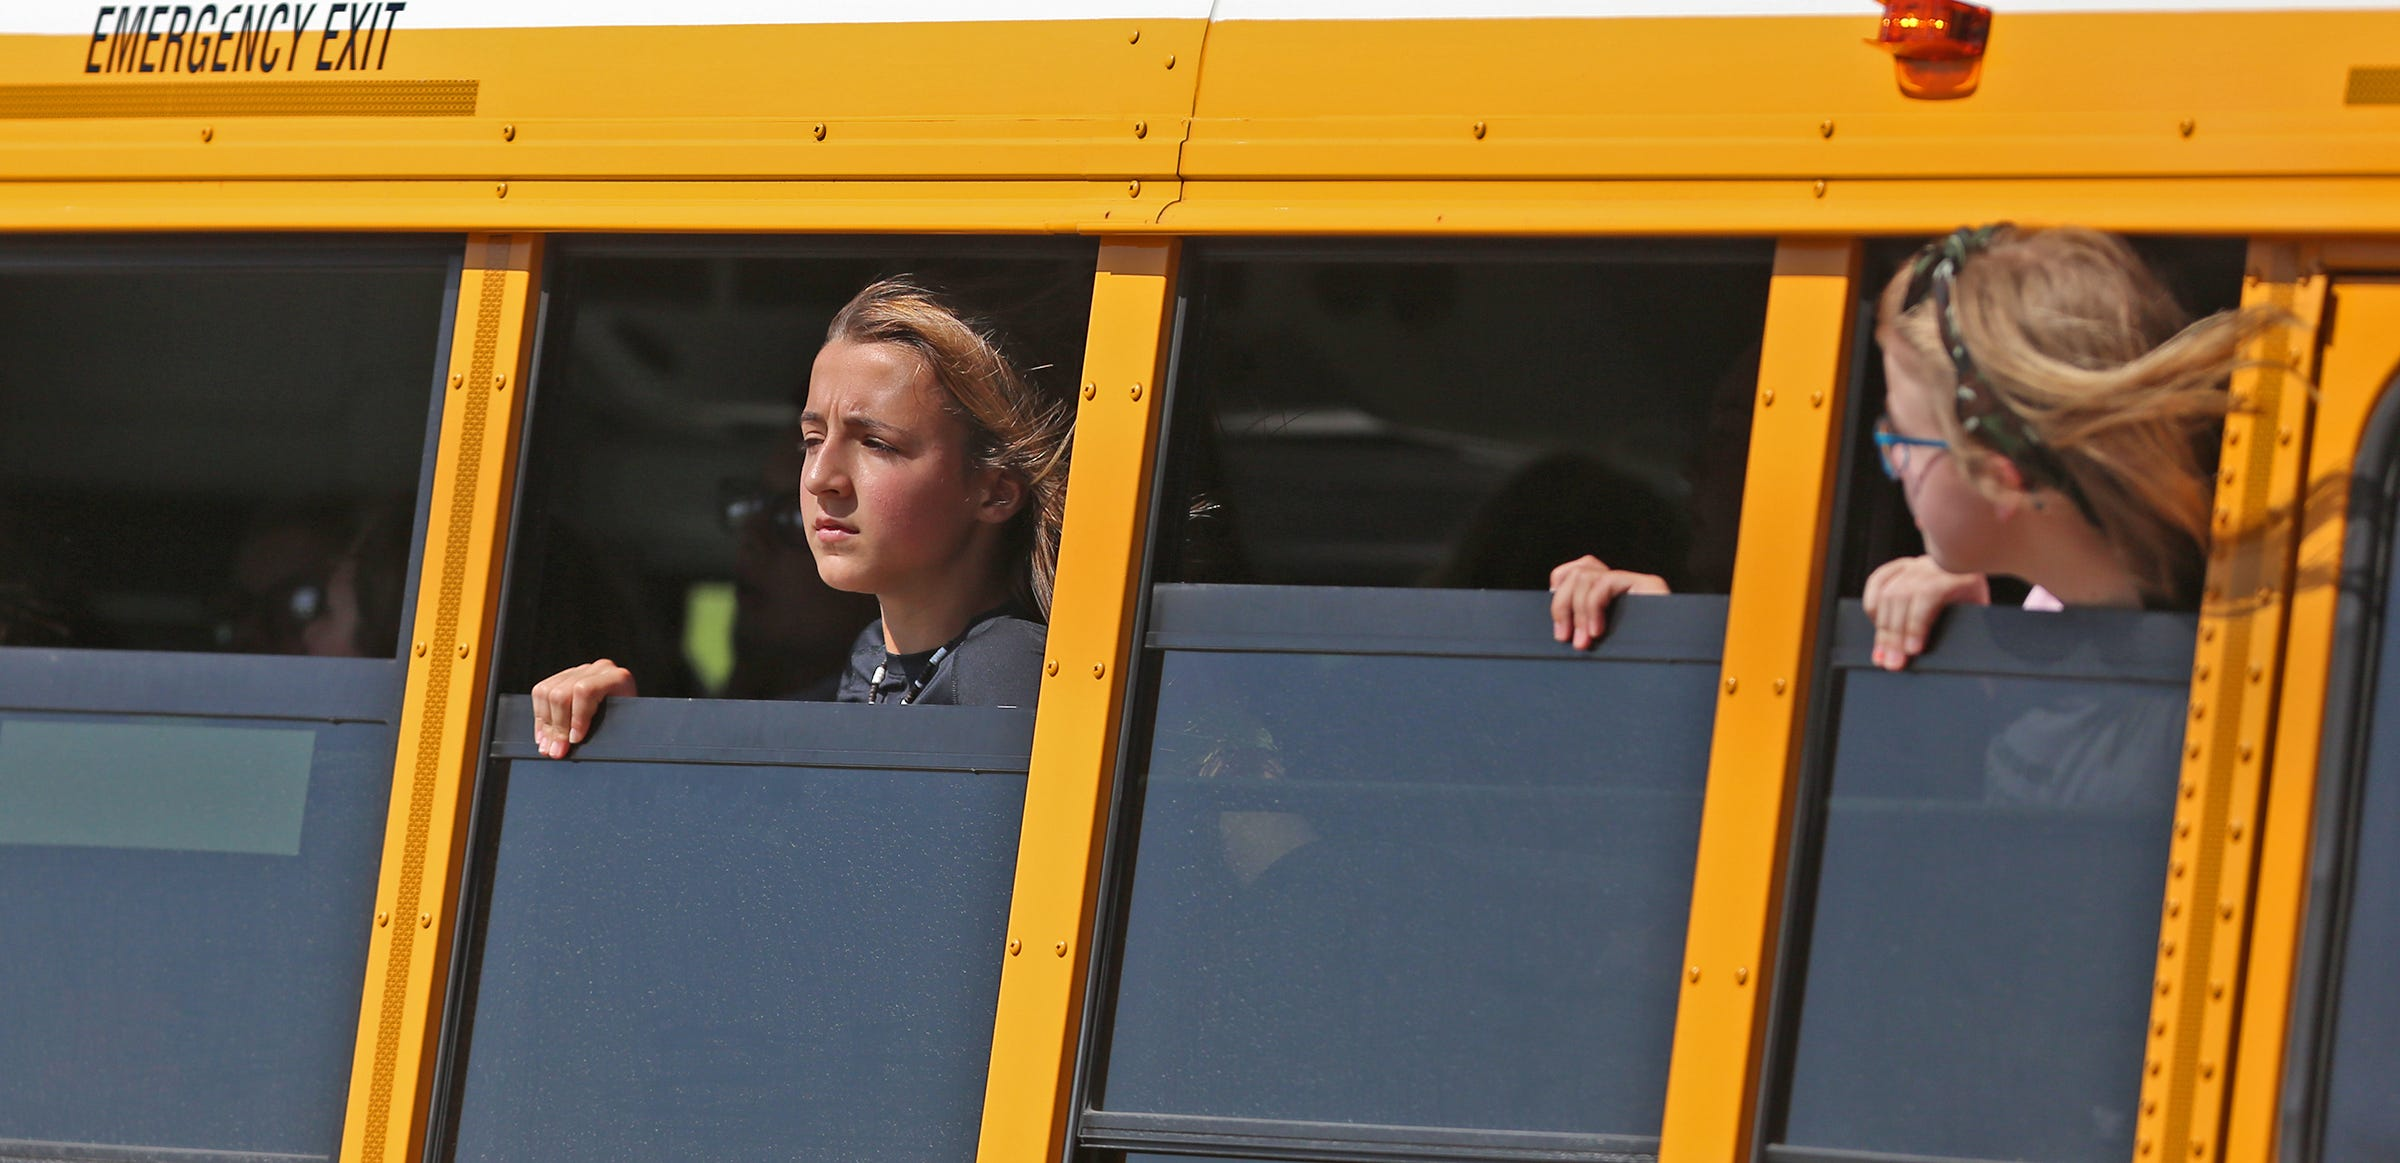 Noblesville's school shooting survivors aren't going to be the same after this